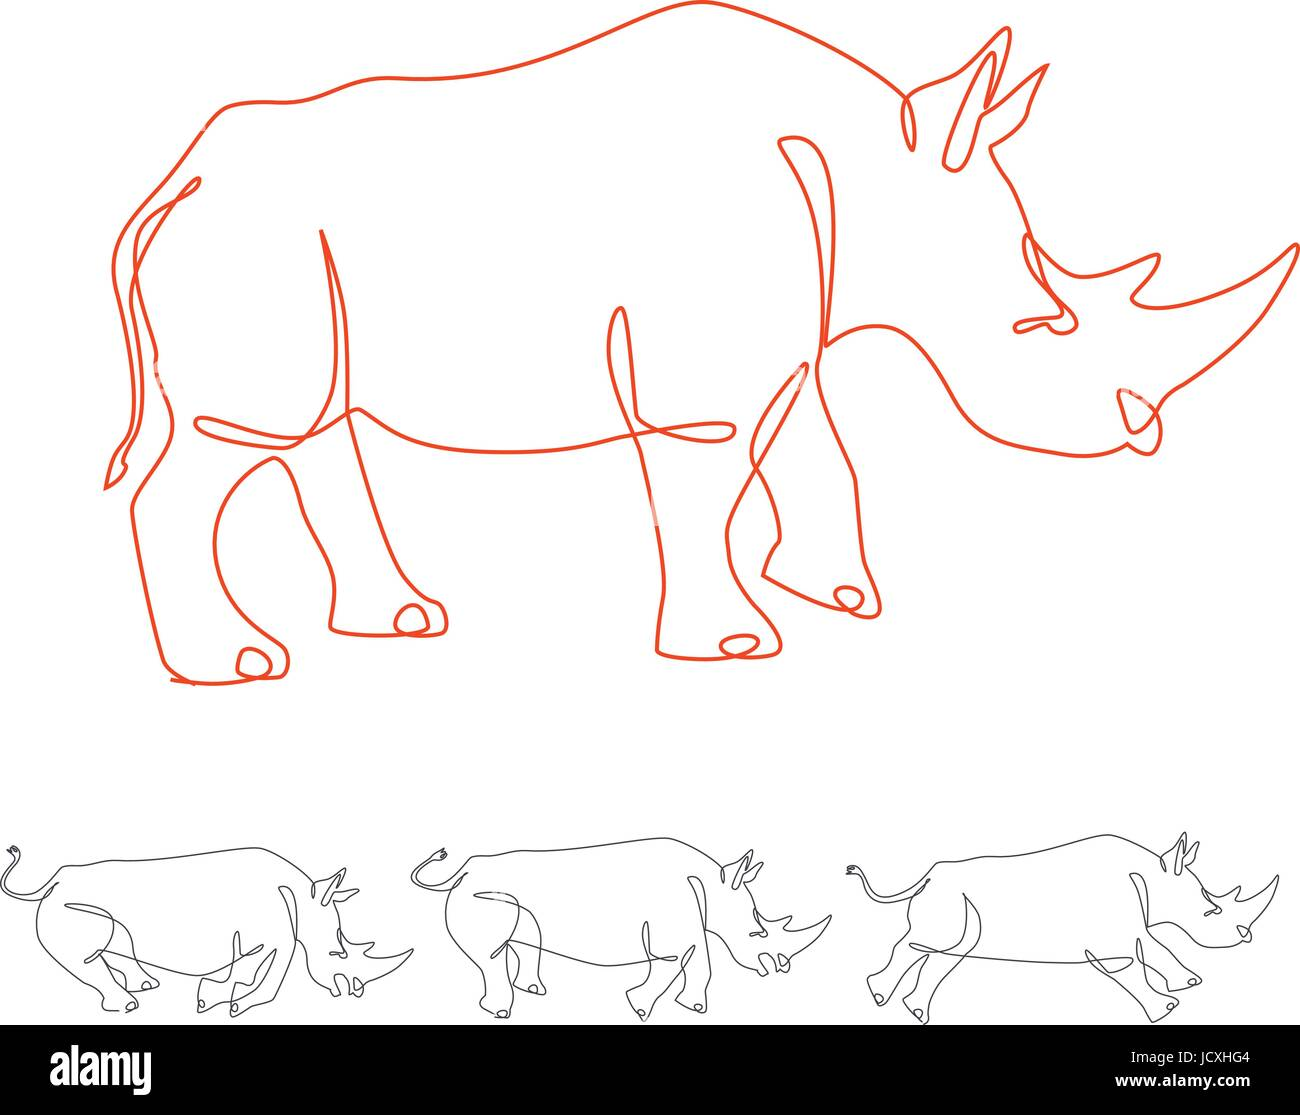 rhino walking and running continuous one line art - Stock Image